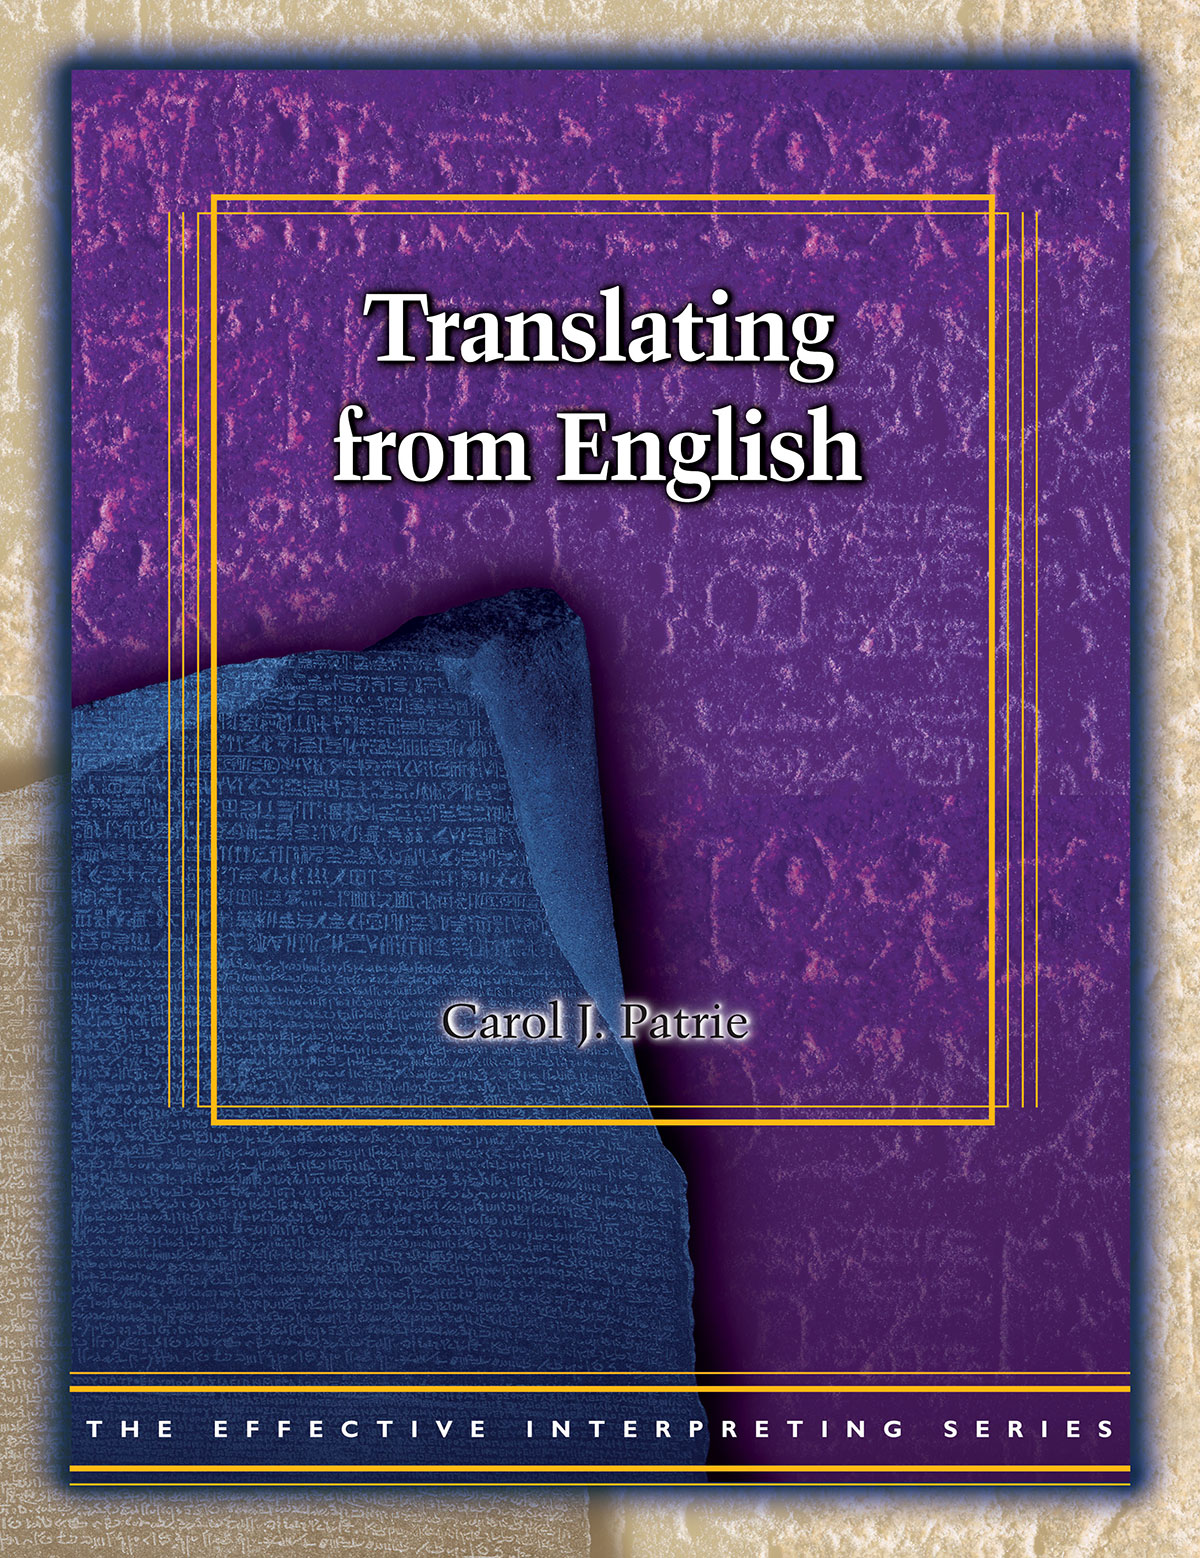 The Effective Interpreting Series: Translating from English - Study Set